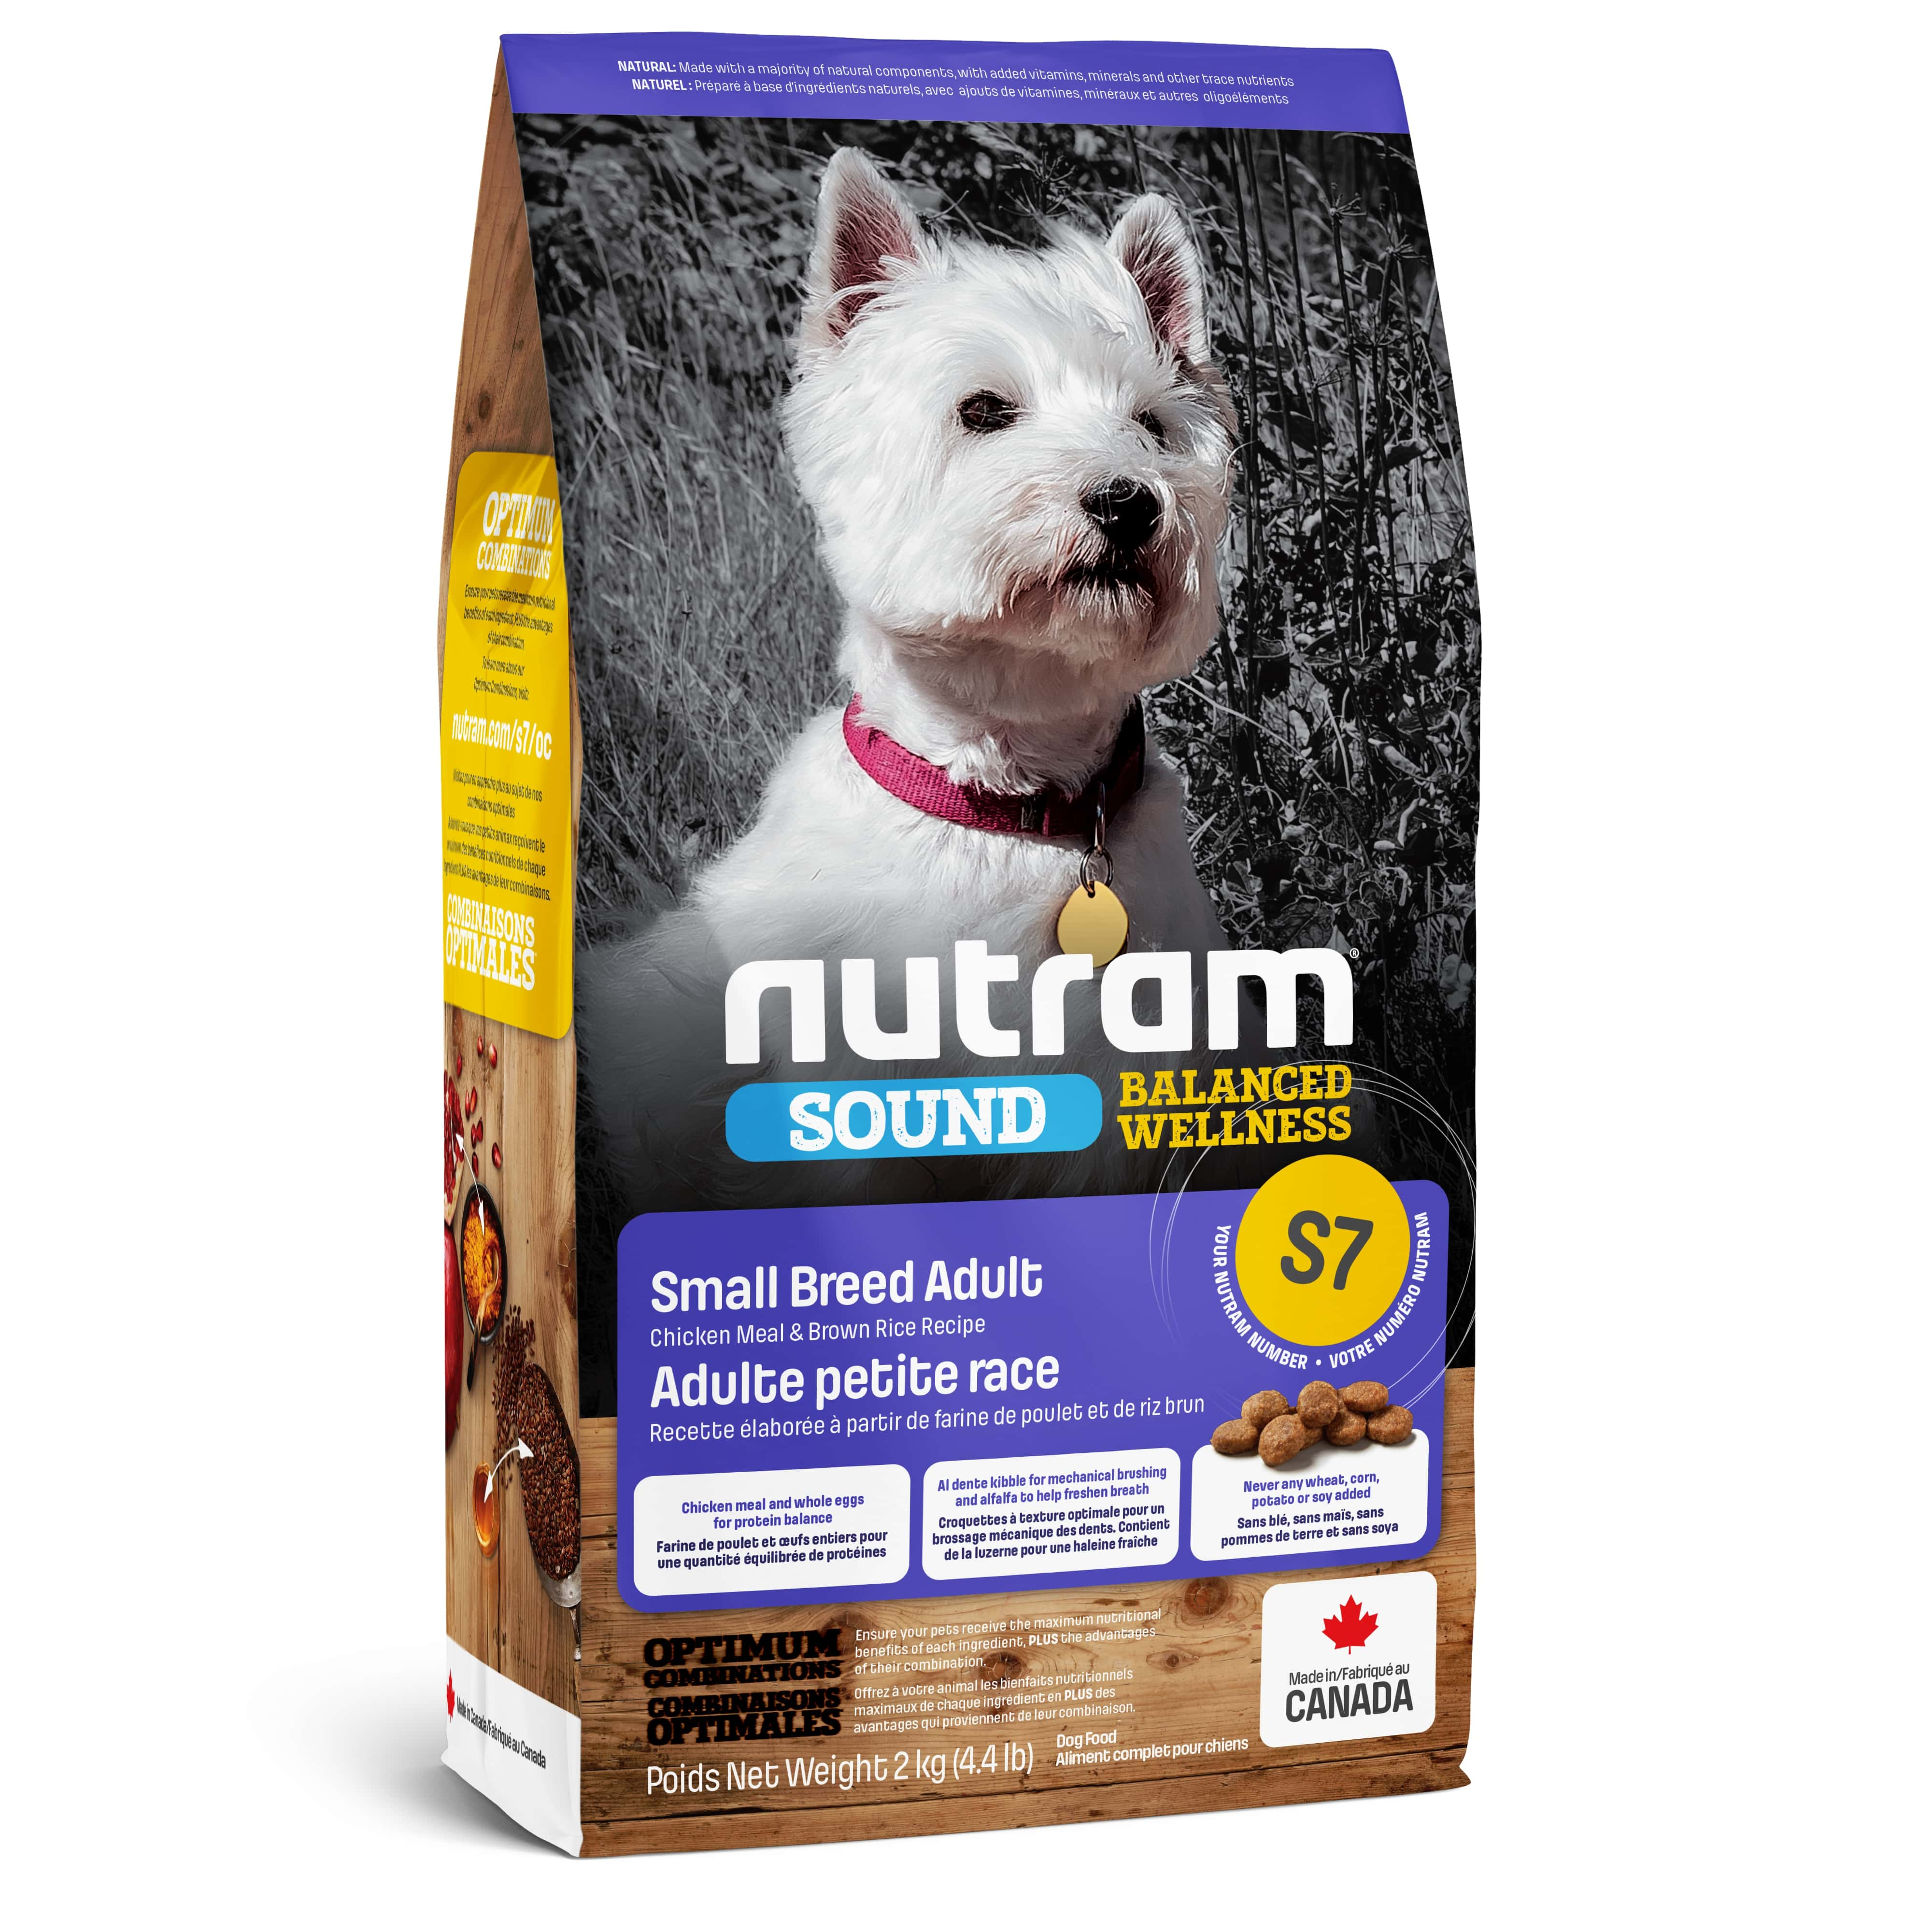 S7 Nutram Sound Balanced Wellness® Small Breed Adult Dog